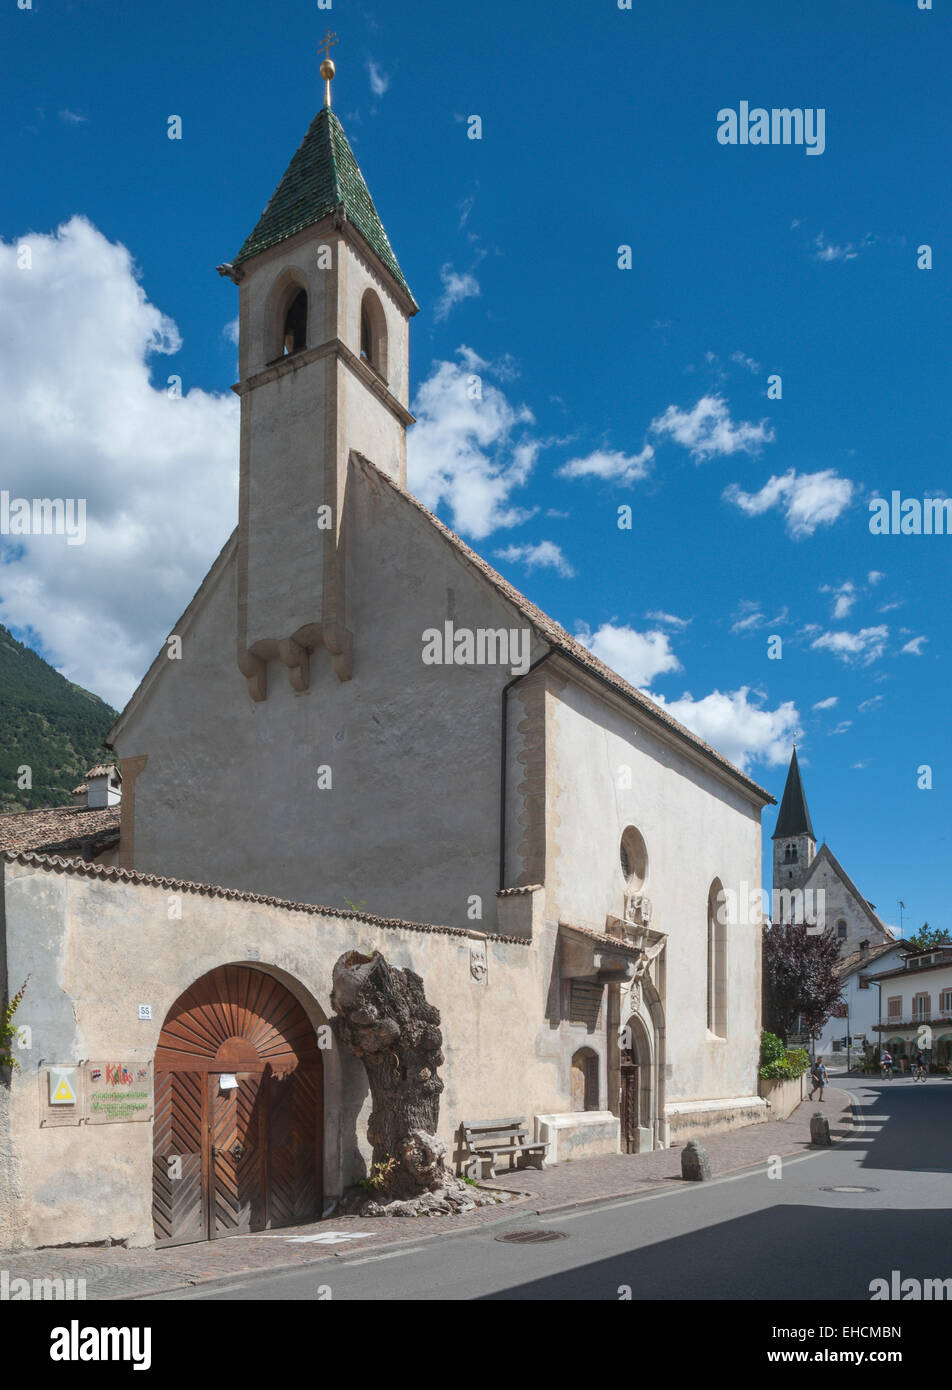 Hospital Church of the Holy Spirit, 1524, Latsch, Laces, Vinschgau, South Tyrol, Italy - Stock Image